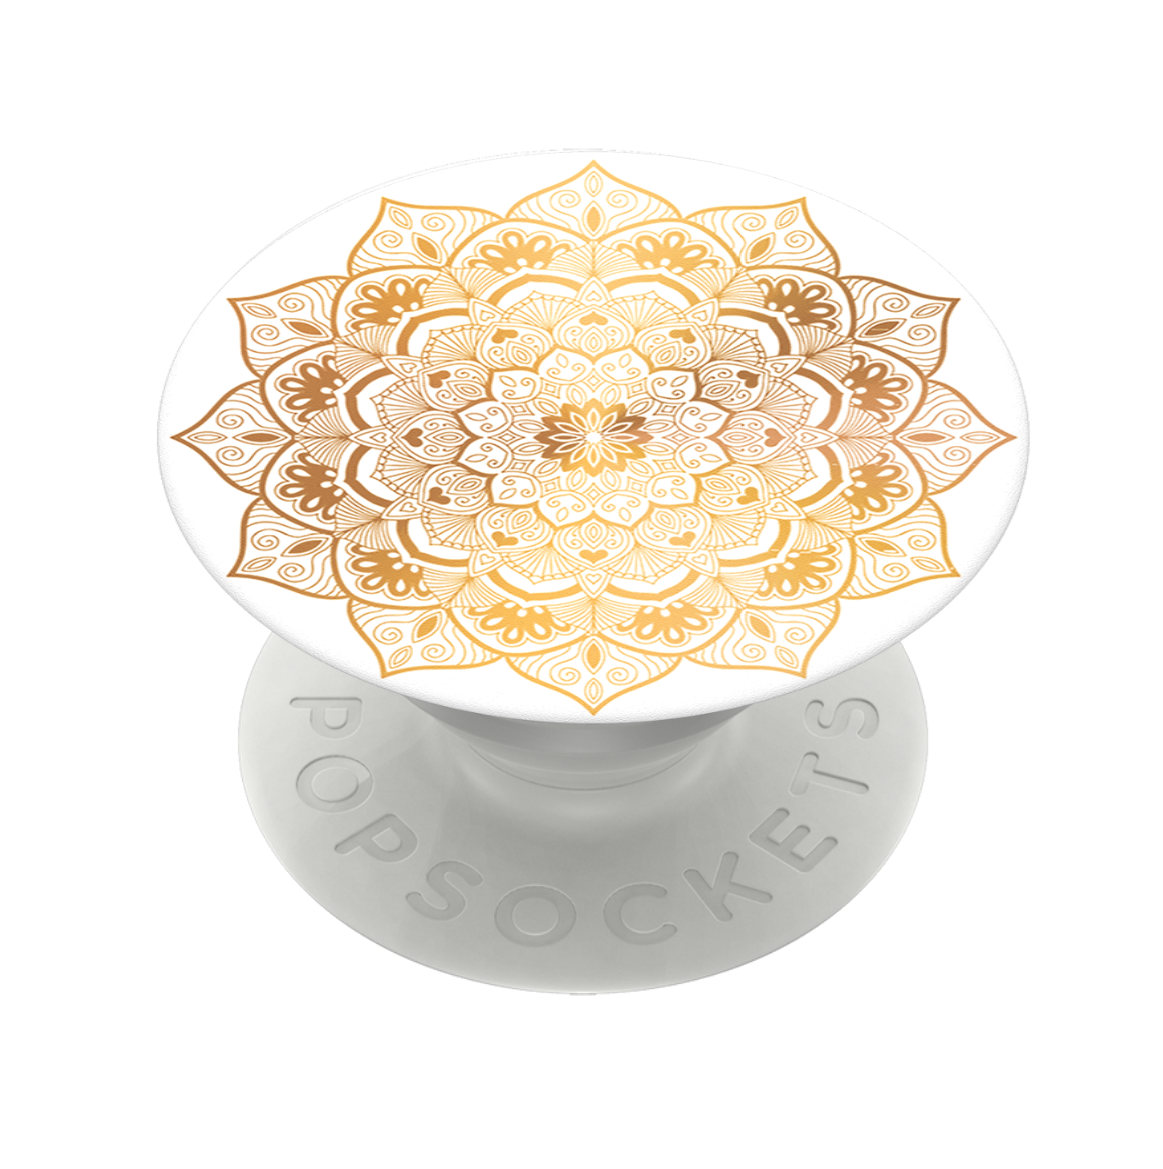 Picture of Pop Sockets - Golden Silence